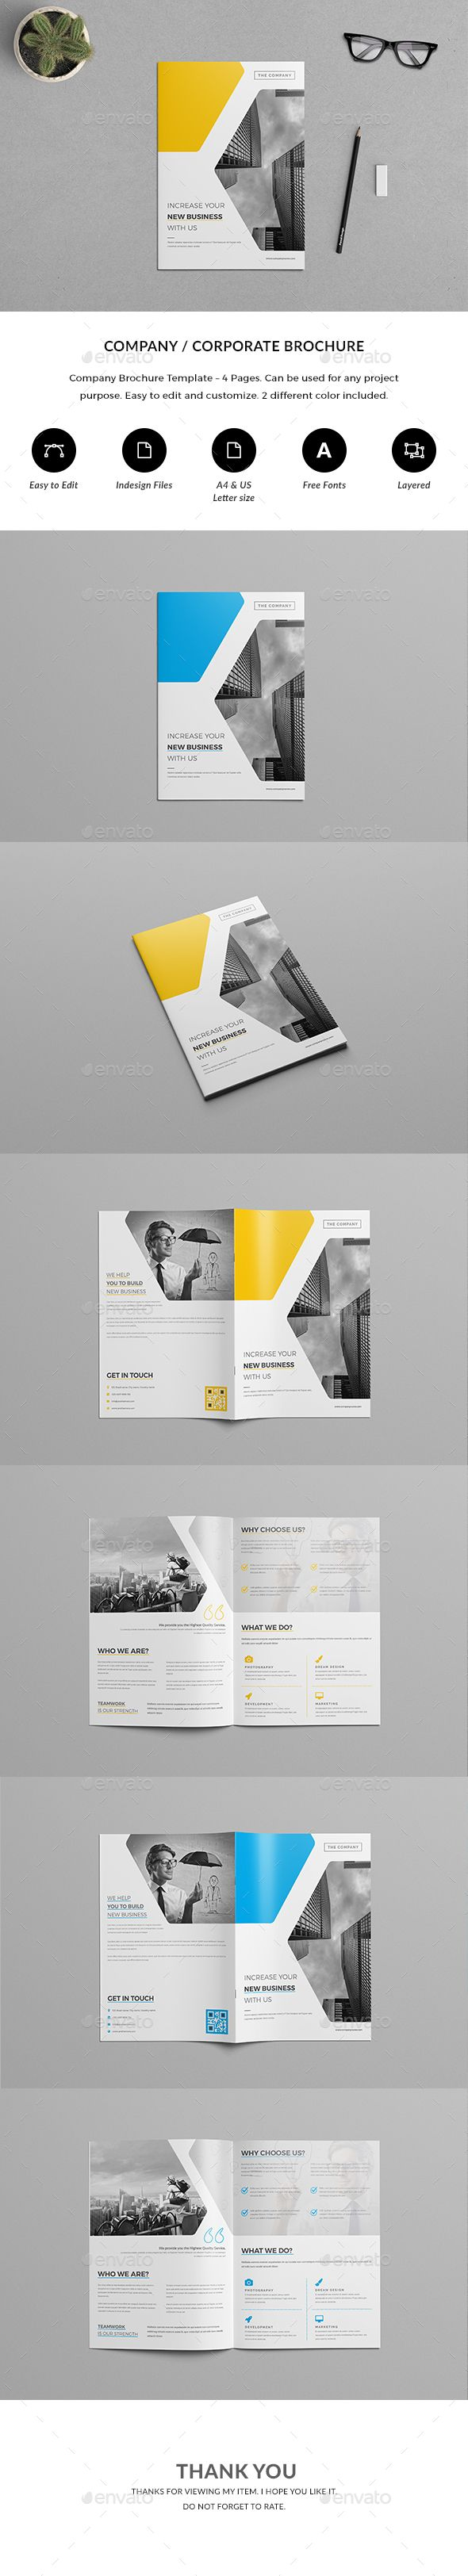 4 Page Brochure  — InDesign Template #inspiration #gray #icons • Download ➝ https://graphicriver.net/item/4-page-brochure/18602159?ref=pxcr